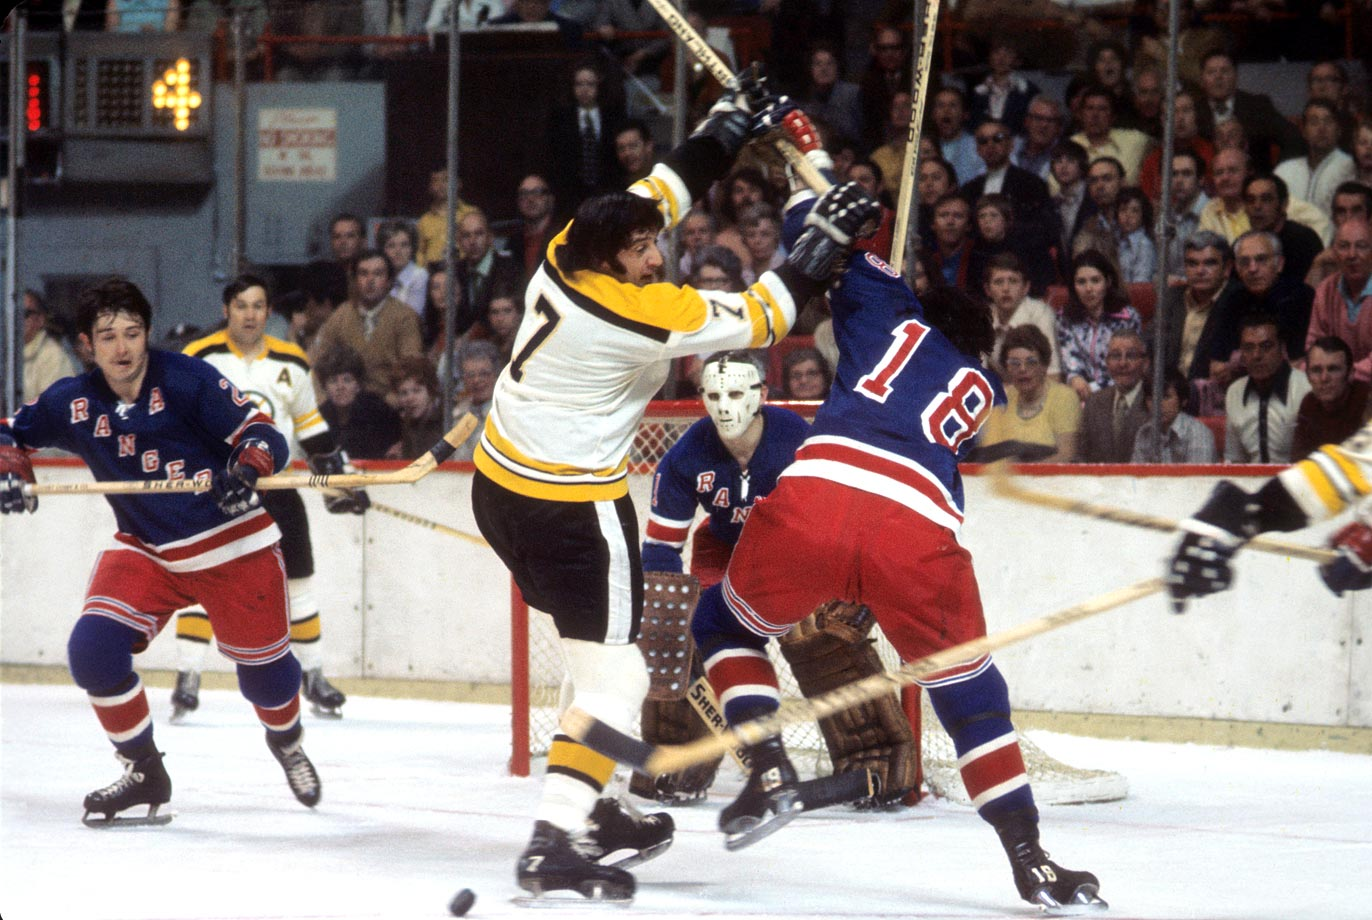 It's no wonder that Boston's Phil Esposito was targeted by New York Ranger